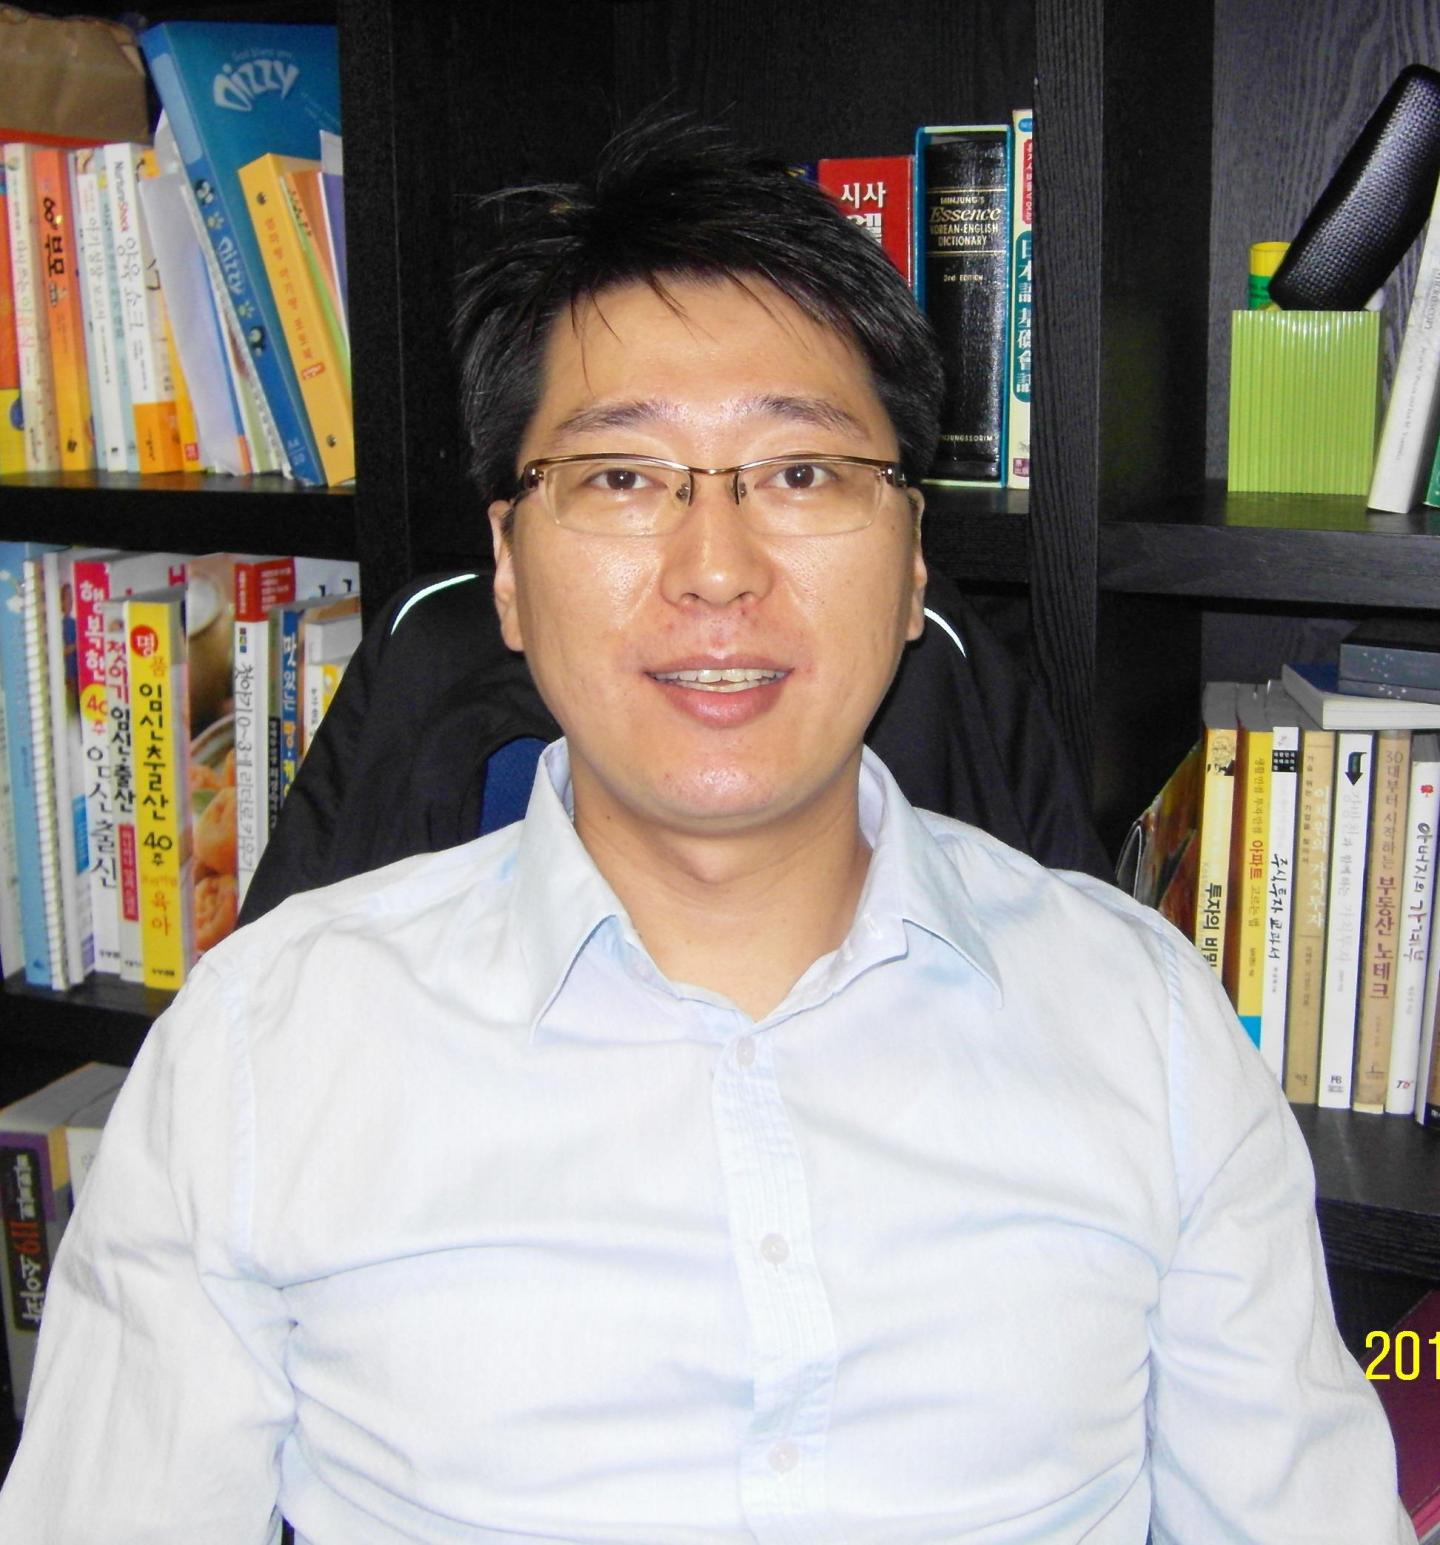 Dr. Yoon Ki Joung, Korea Institute of Science and Technology